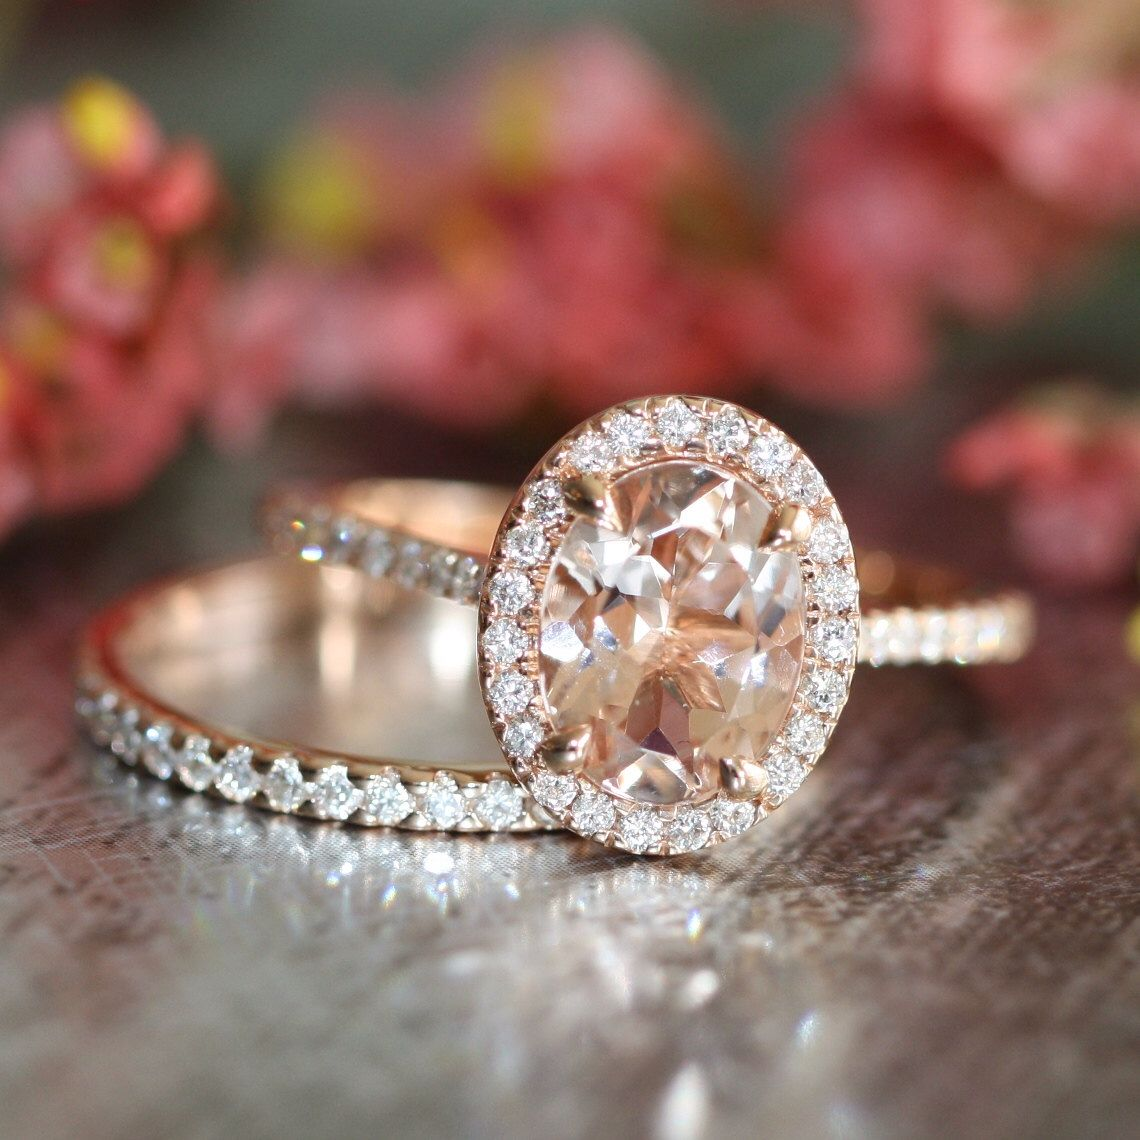 Morganite Engagement Ring Petite Diamond Wedding Ring Set in 14k Rose Gold, 9x7mm Oval Pink Morganite Ring and Half Diamond Eternity Band by LaMoreDesign on Etsy https://www.etsy.com/listing/194333932/morganite-engagement-ring-petite-diamond